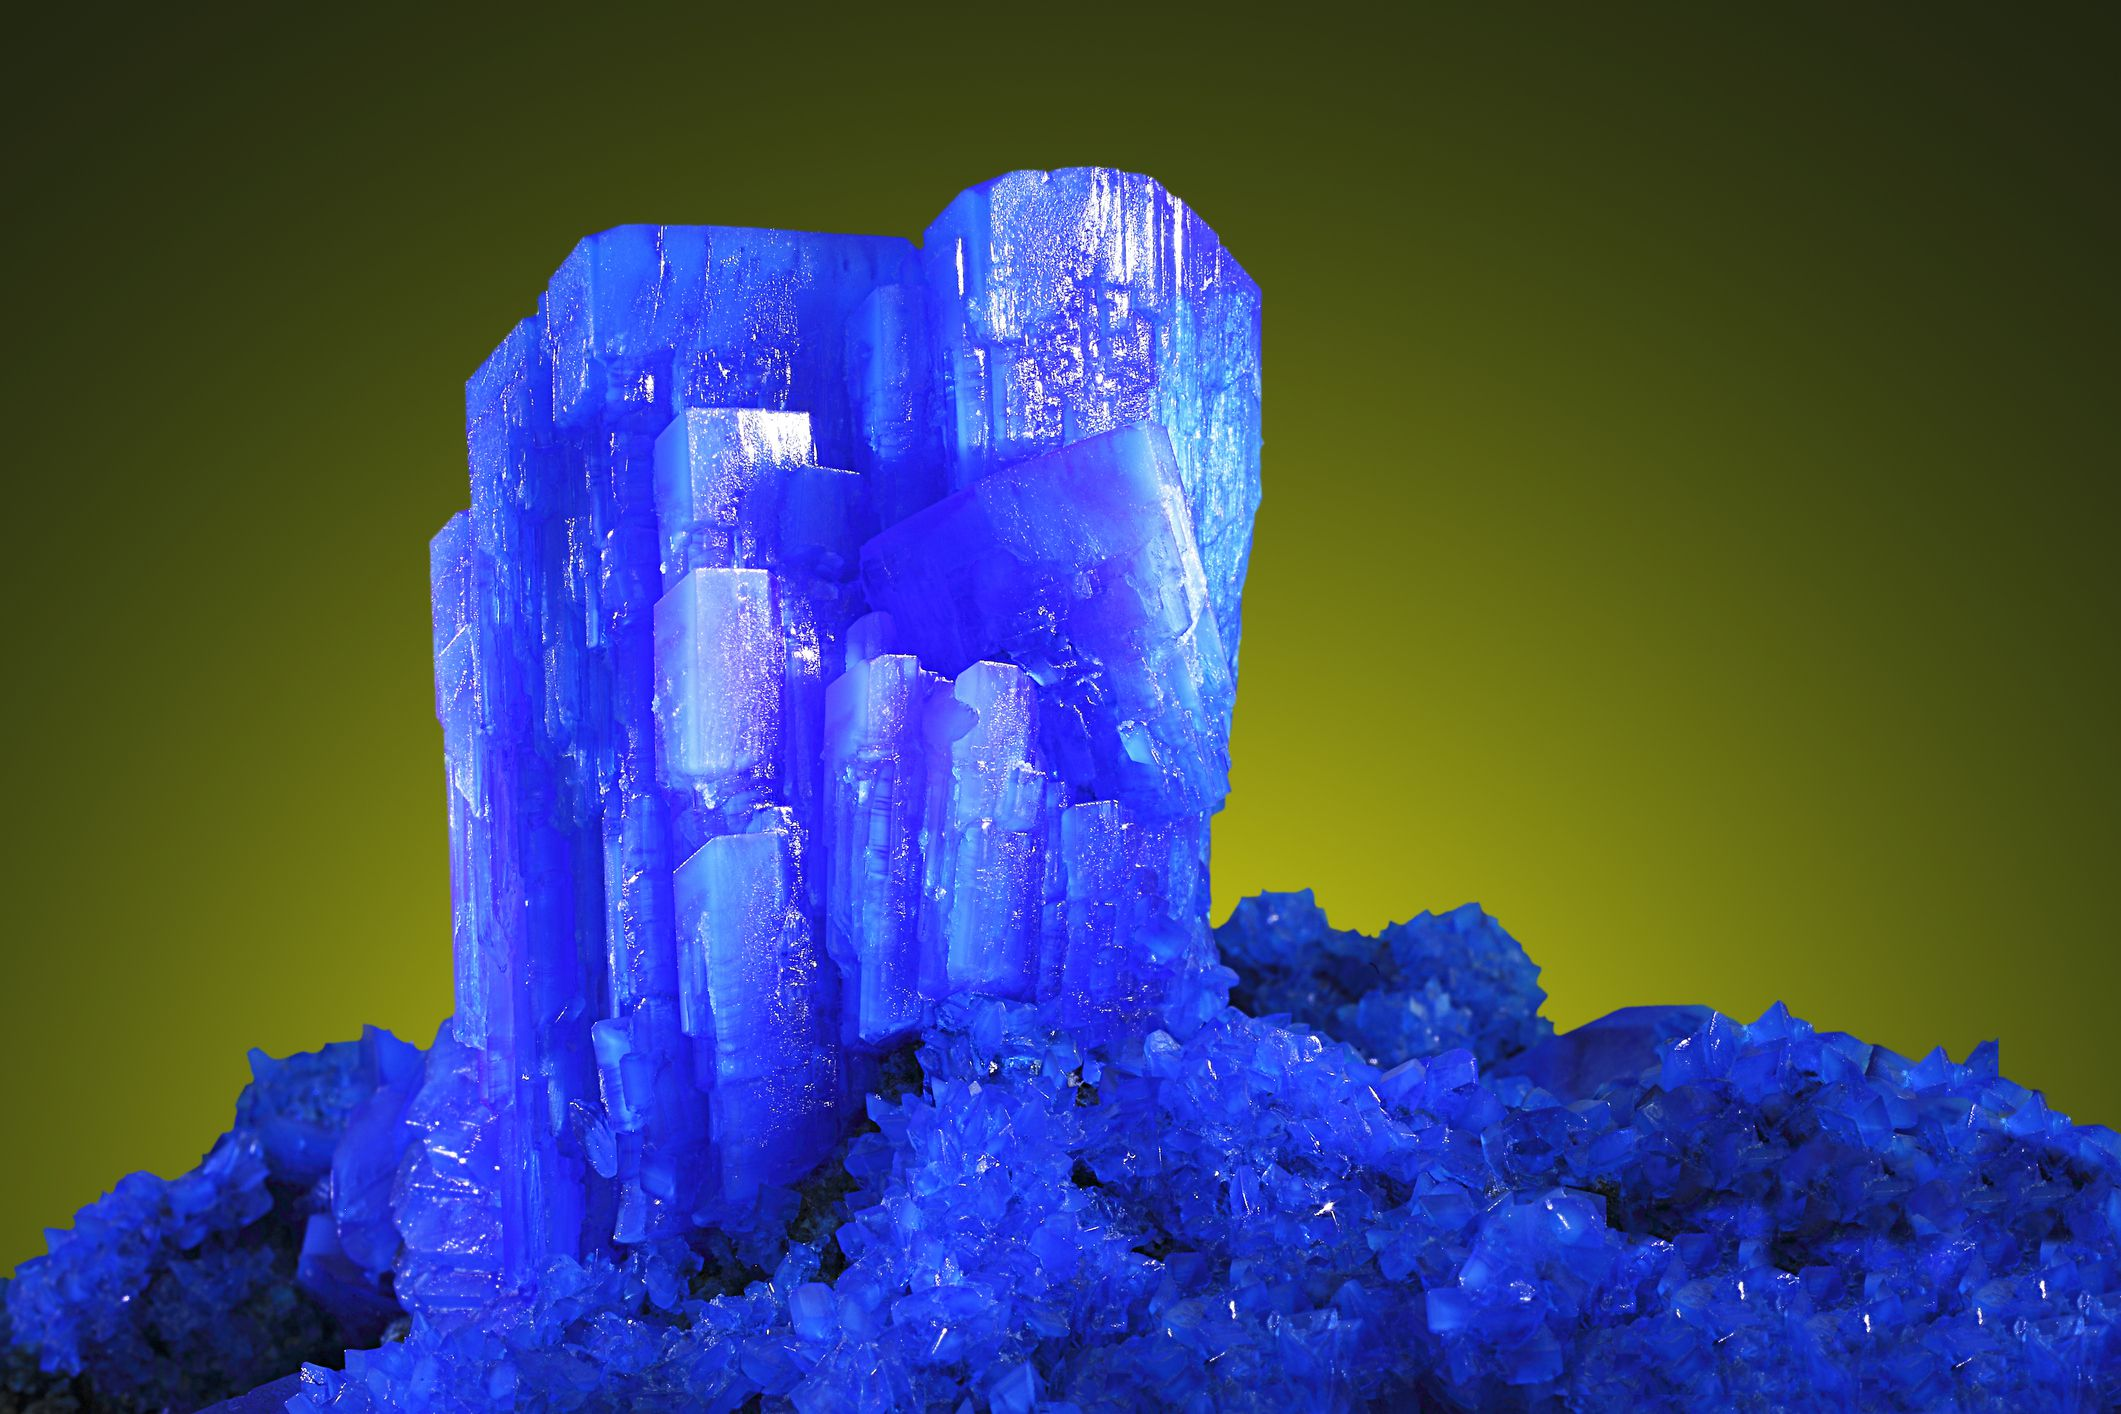 Types of Crystals: Shapes and Structures